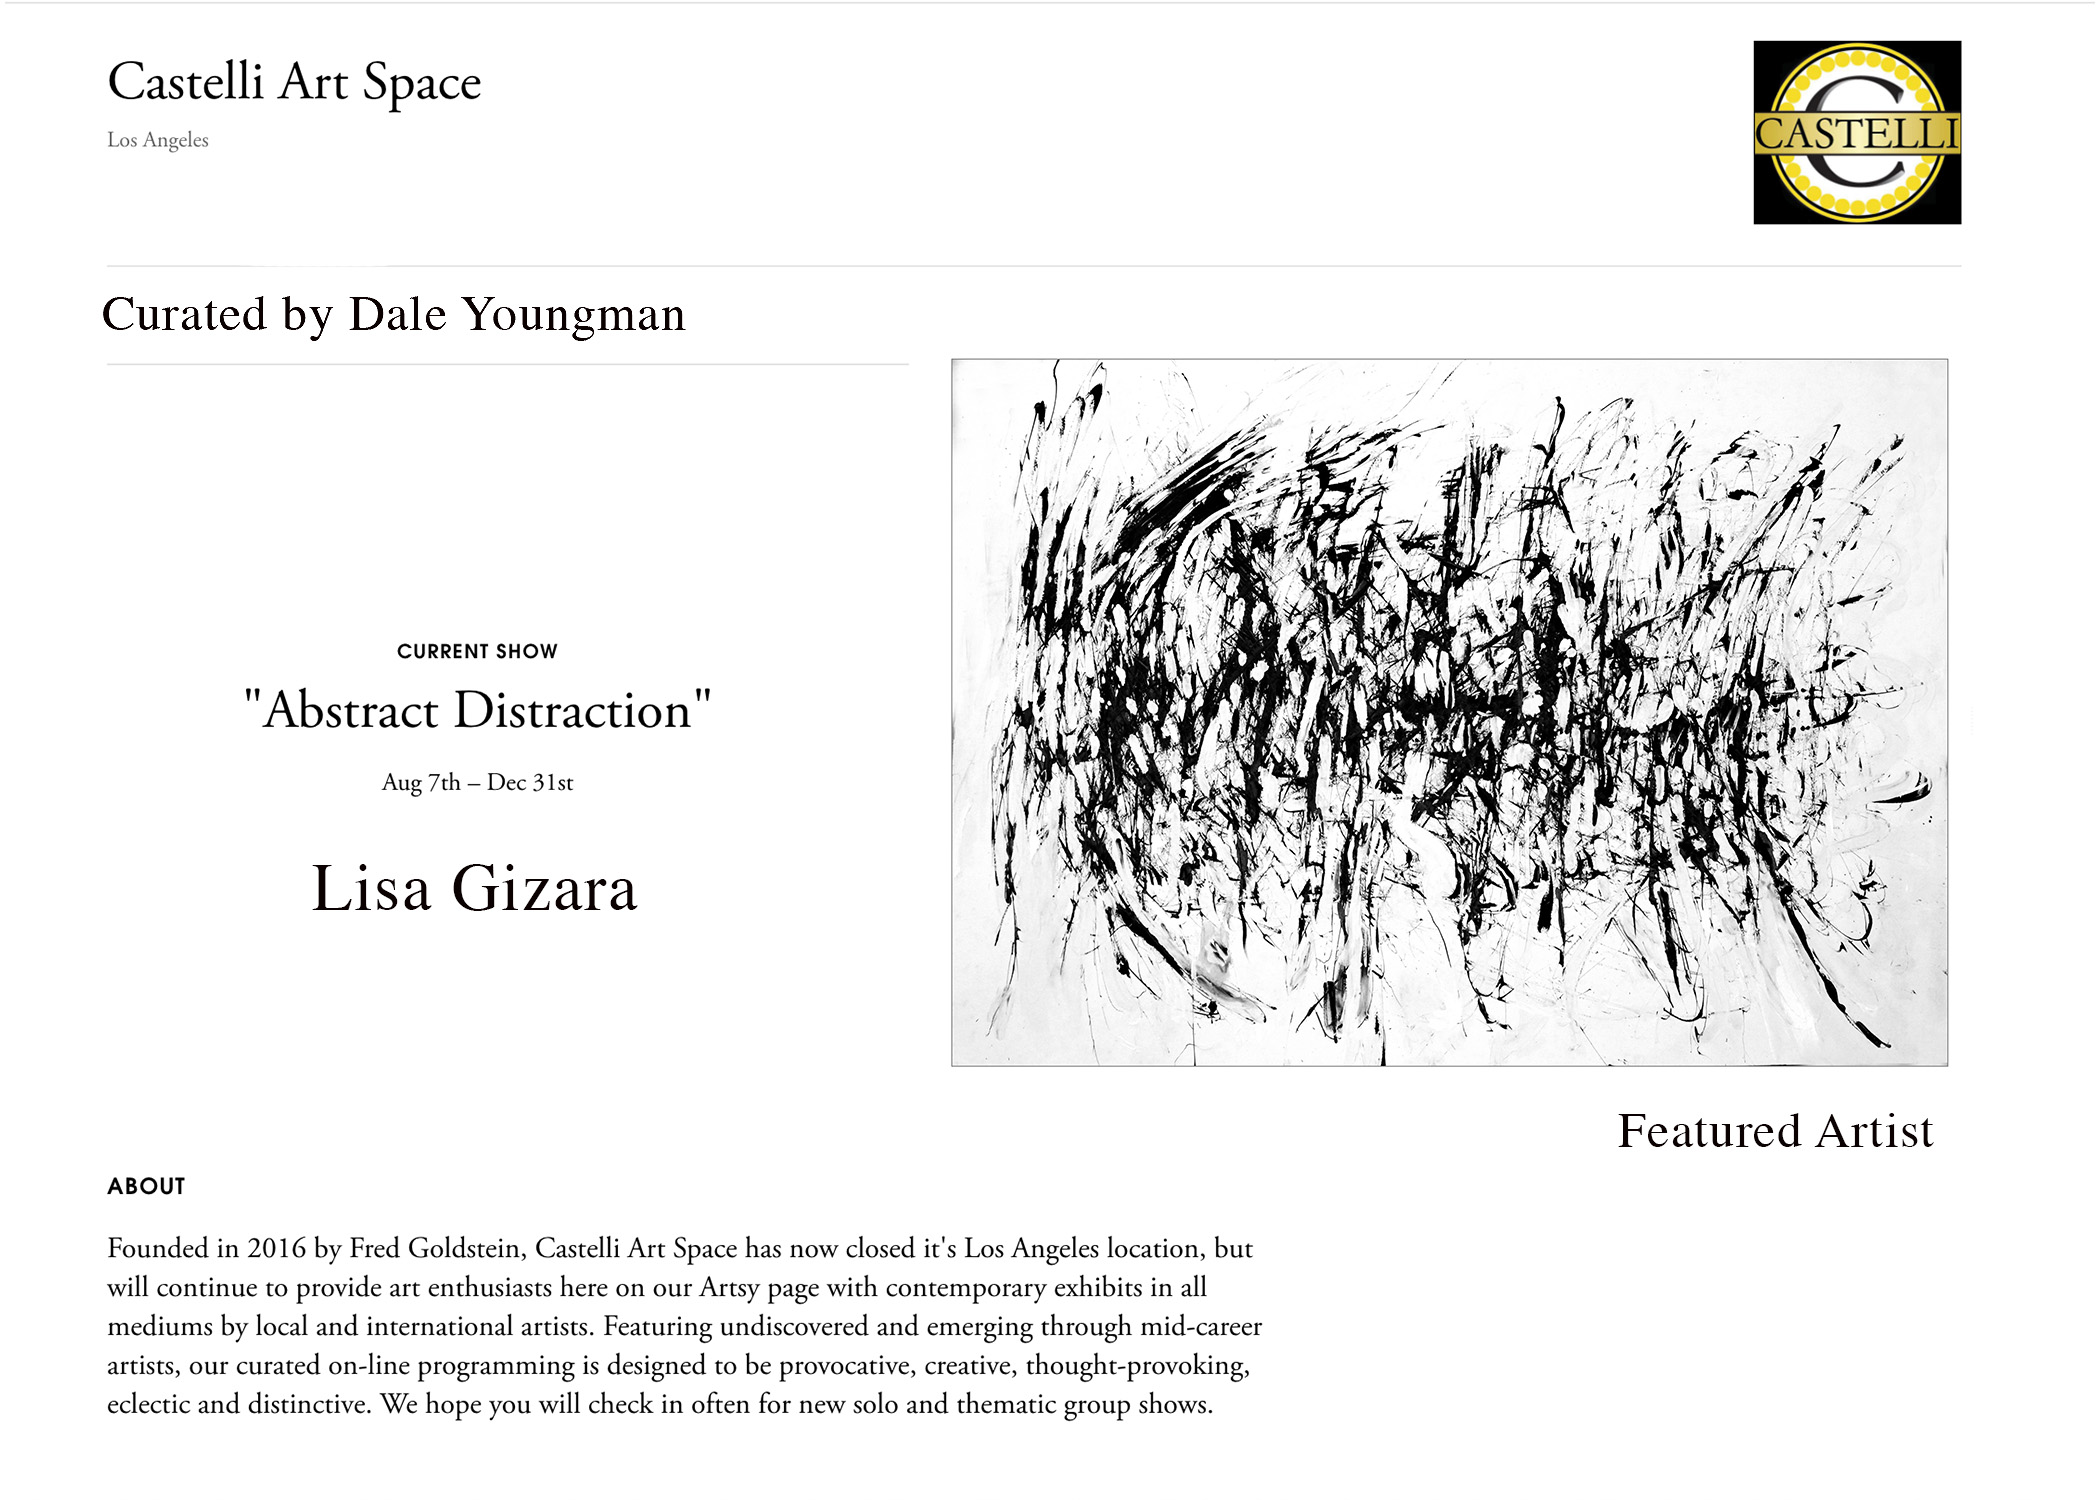 Gizara at The Castelli Art Space